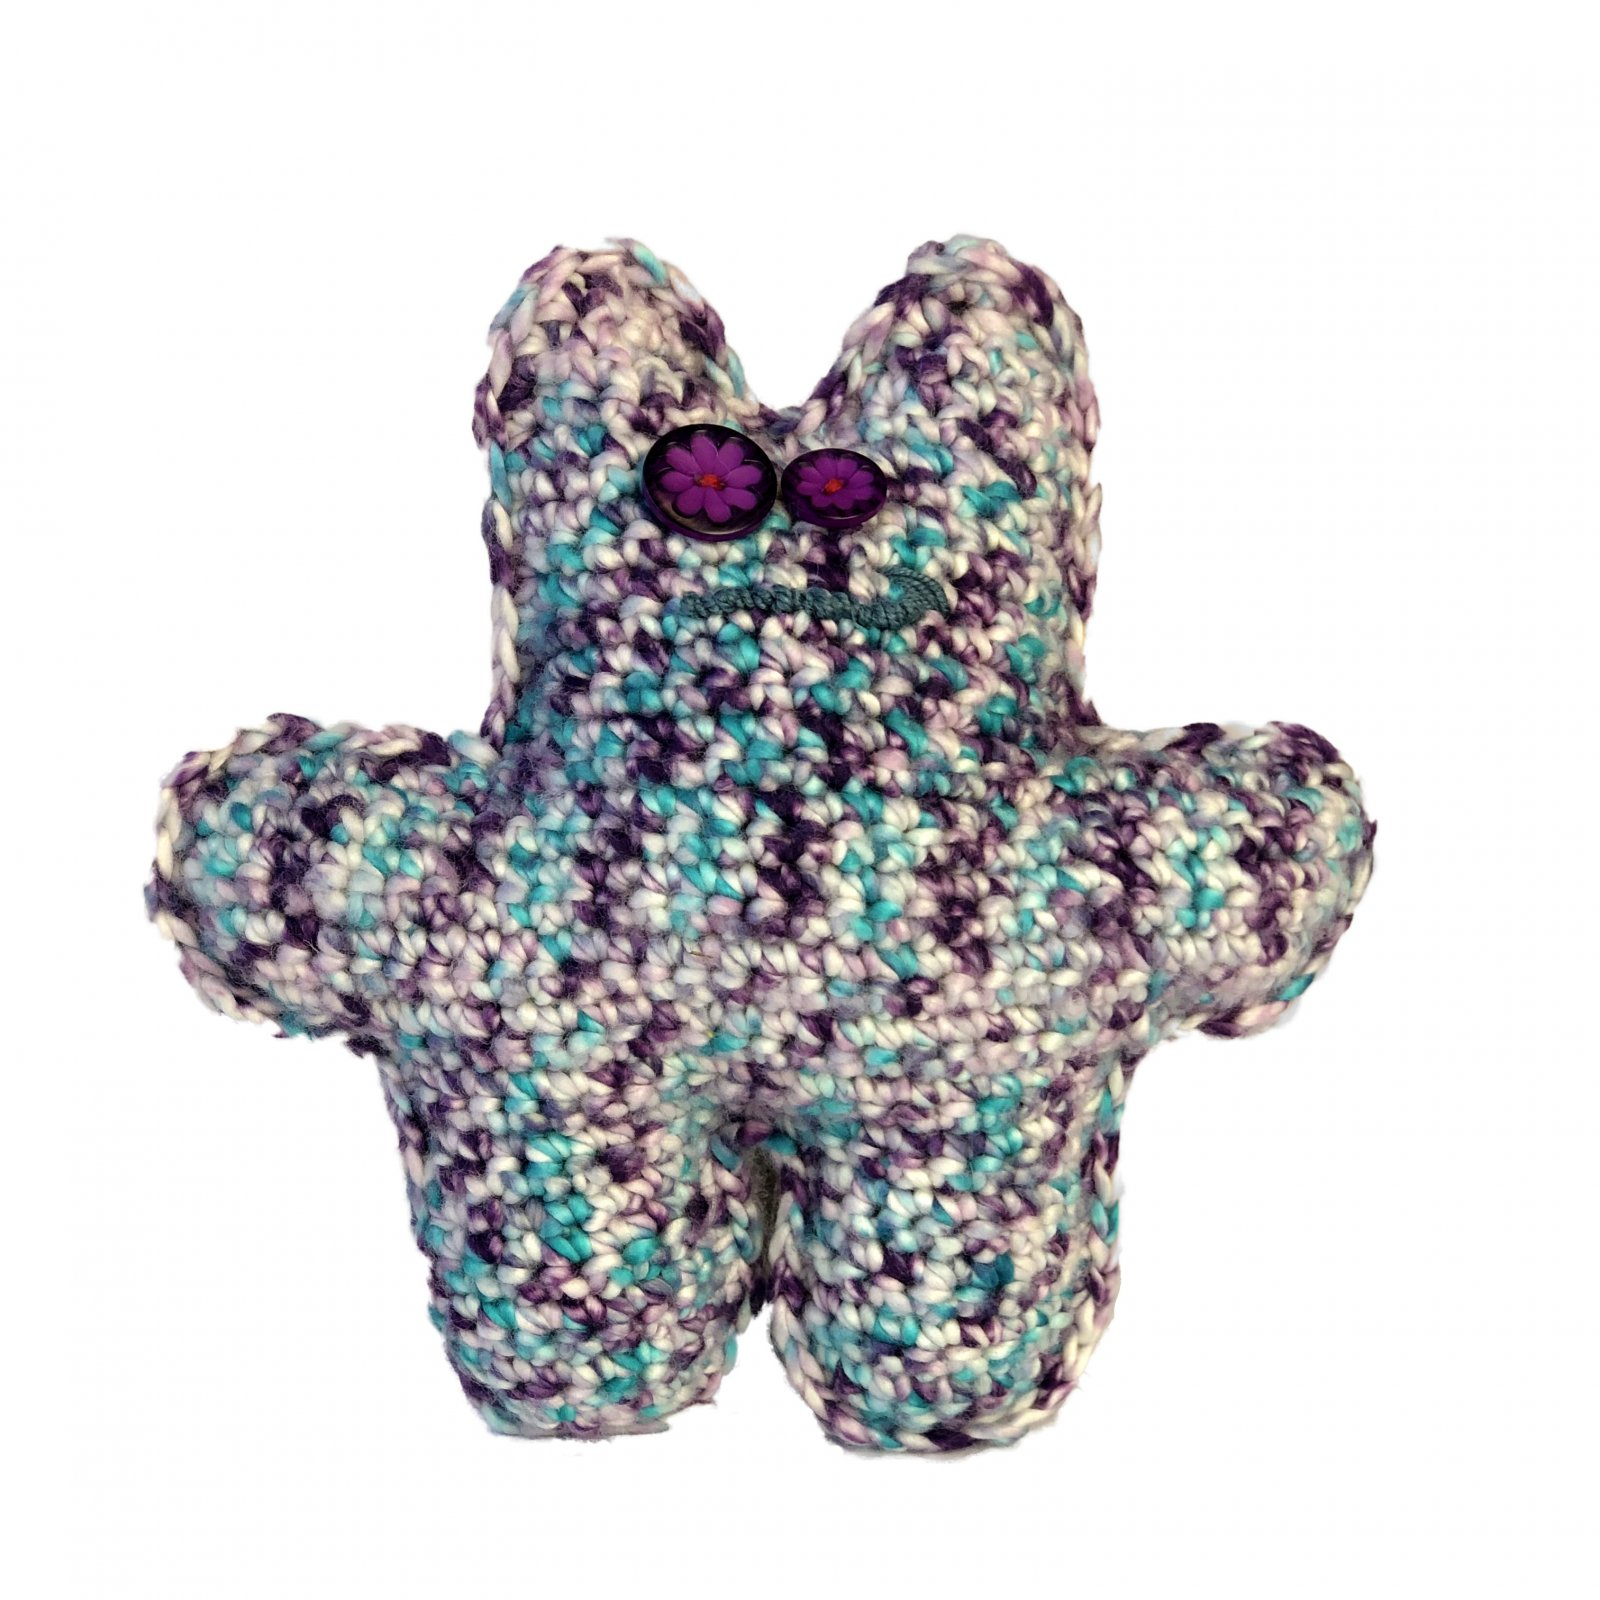 Monster Along - Knit and Crochet patterns - free PDF download